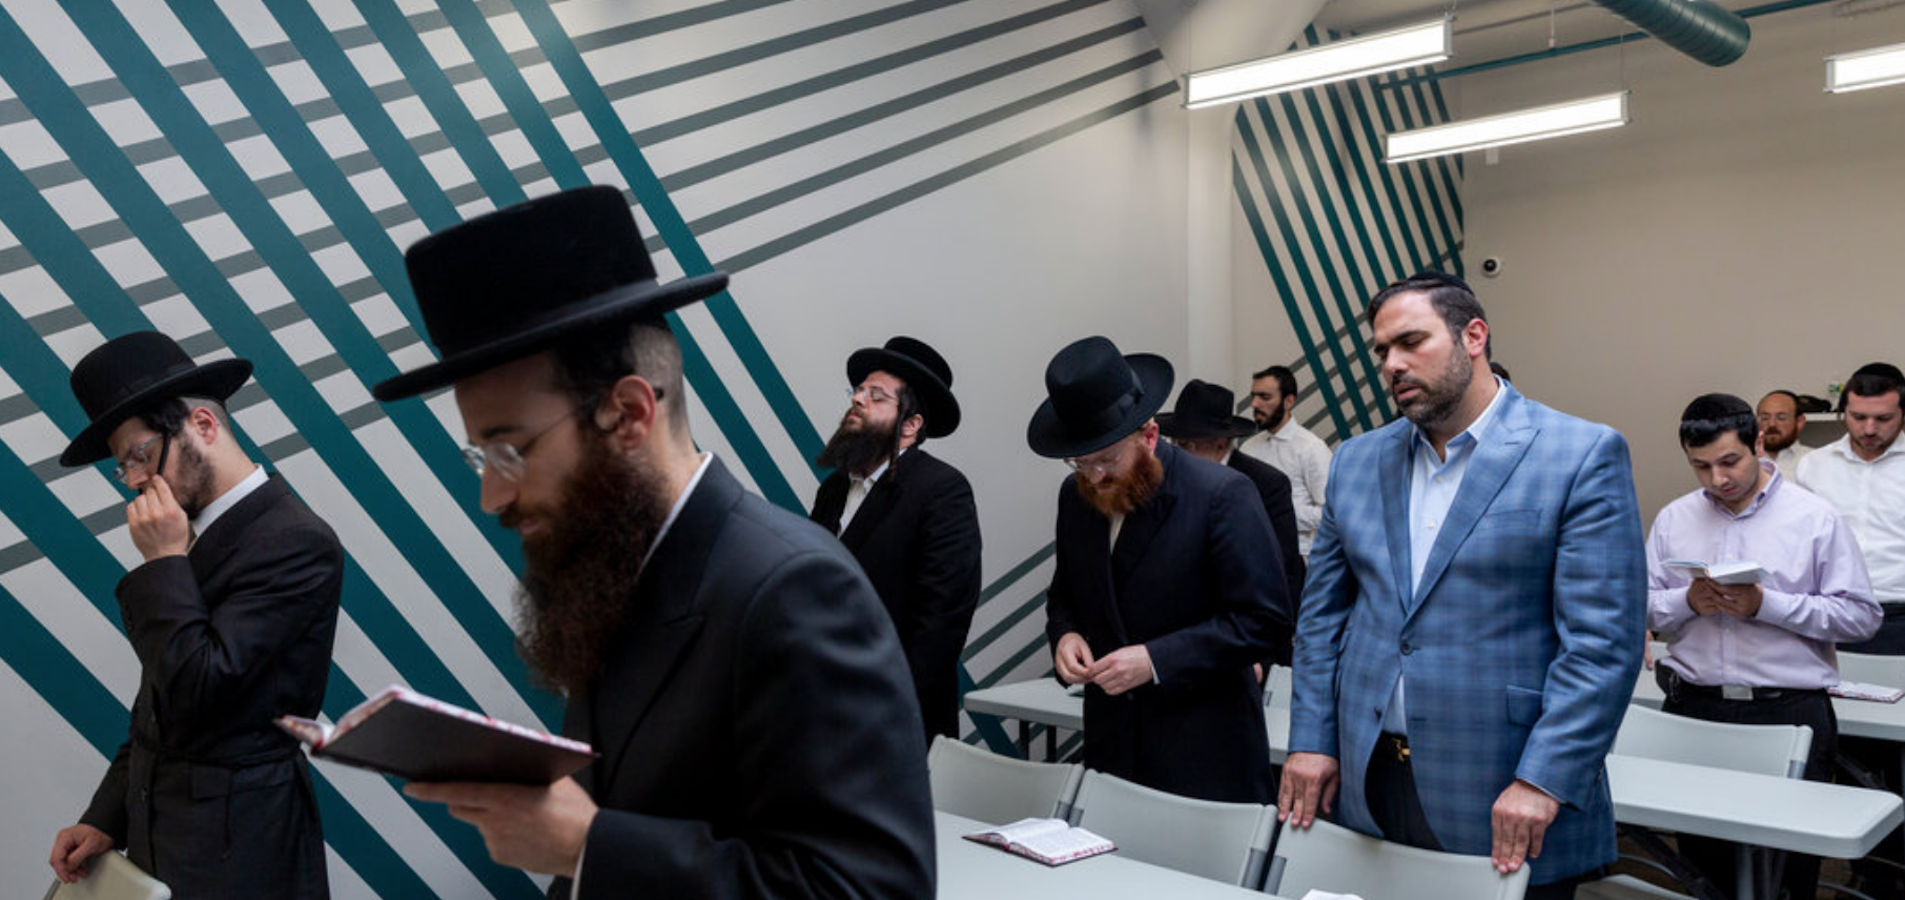 How Hasidic Business Sales Thrive on Amazon.com & Other Orthodox Jews in the News